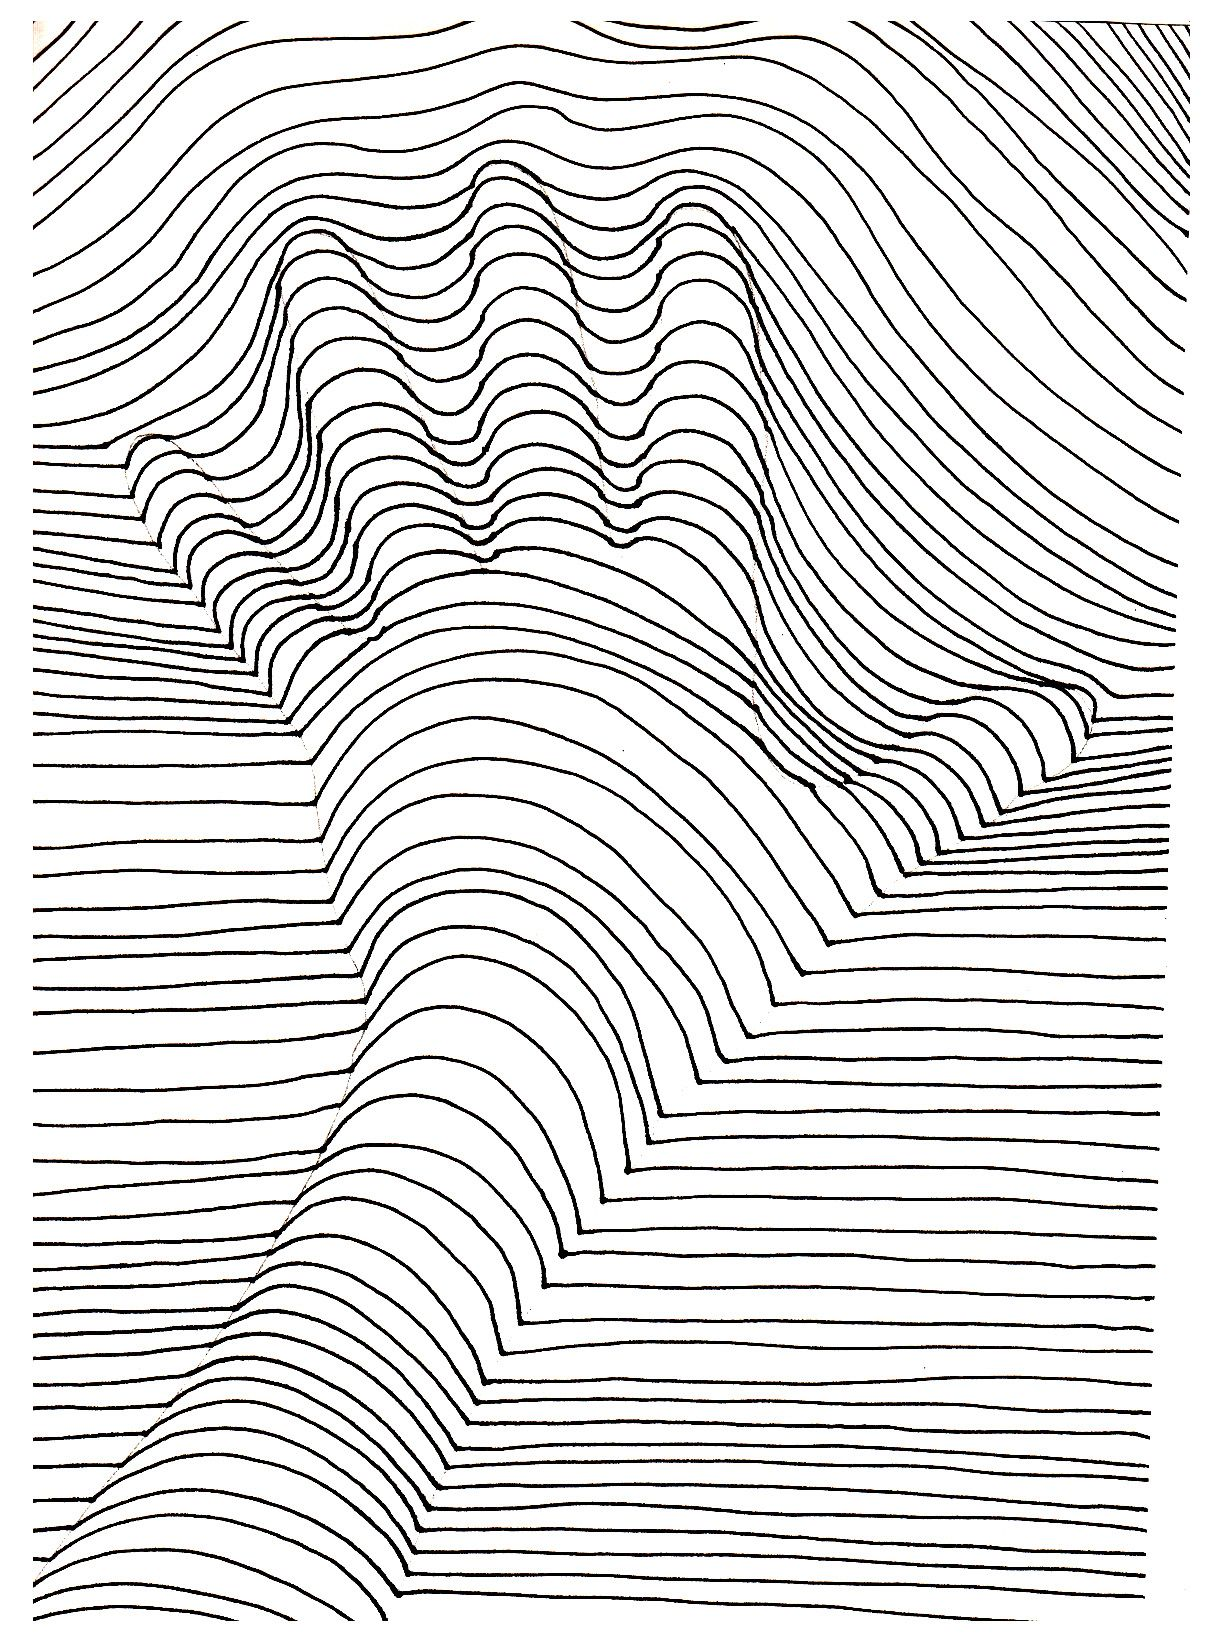 op art coloring pages - photo#25